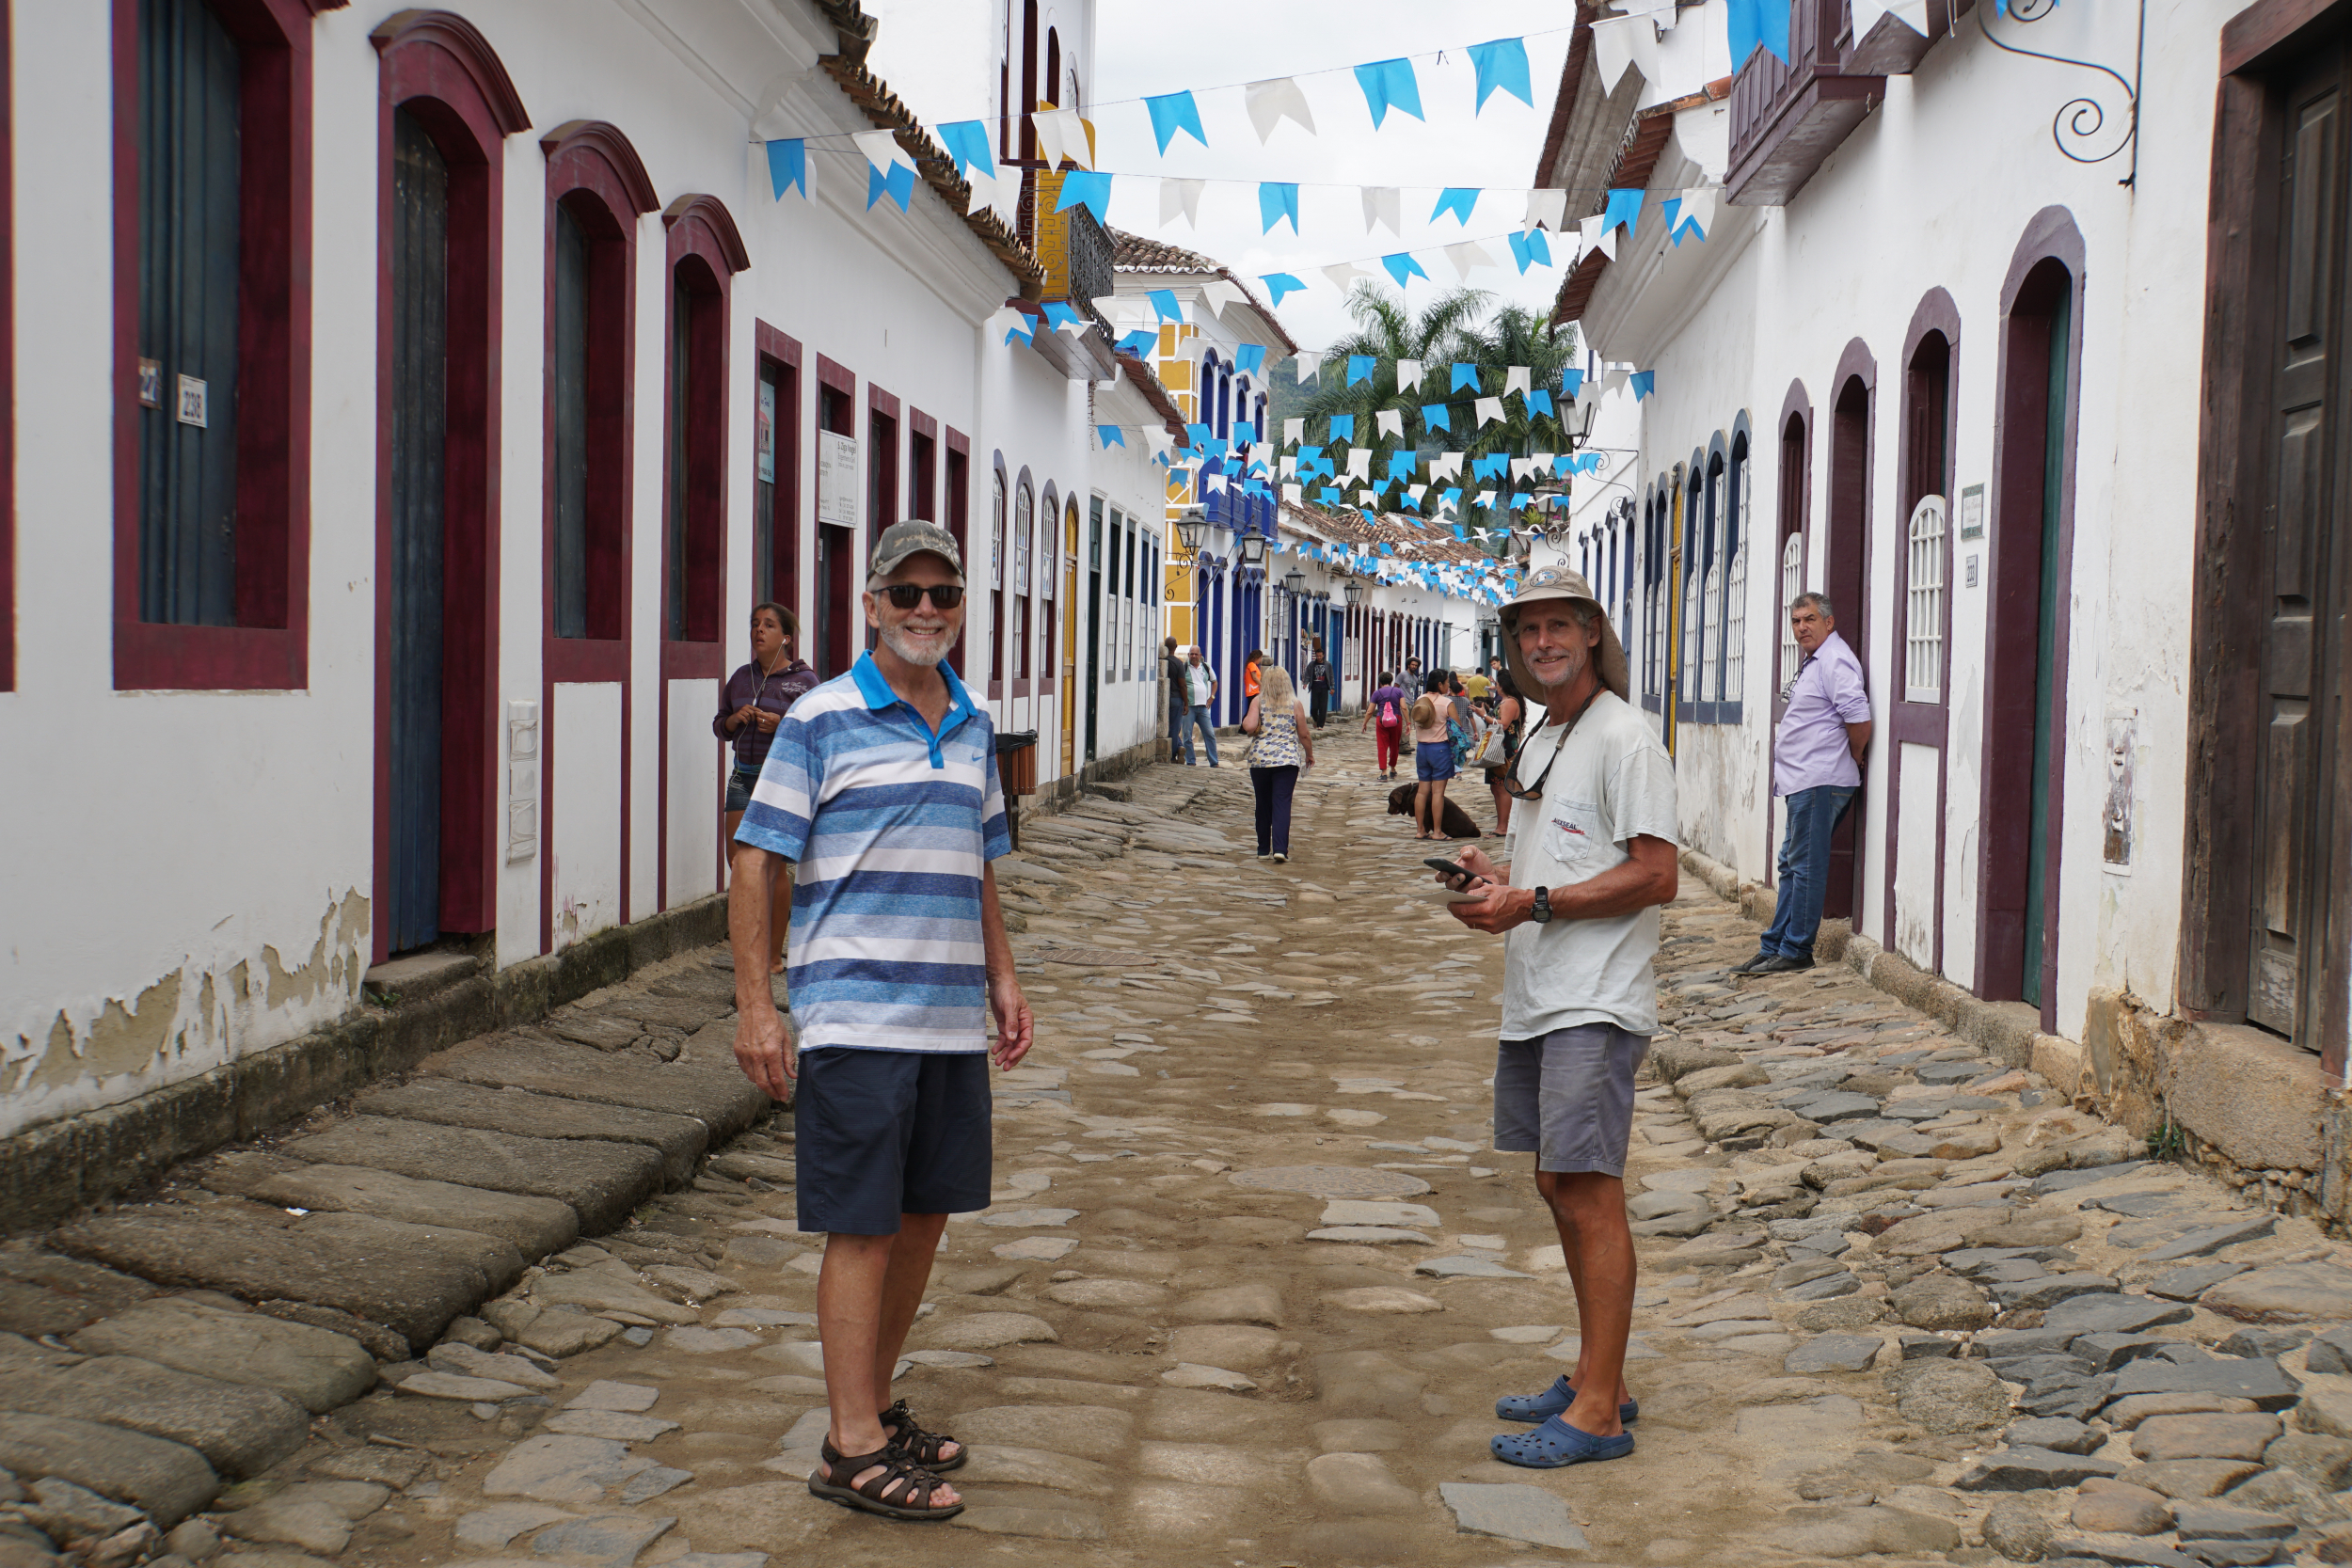 34. Streets of Paraty